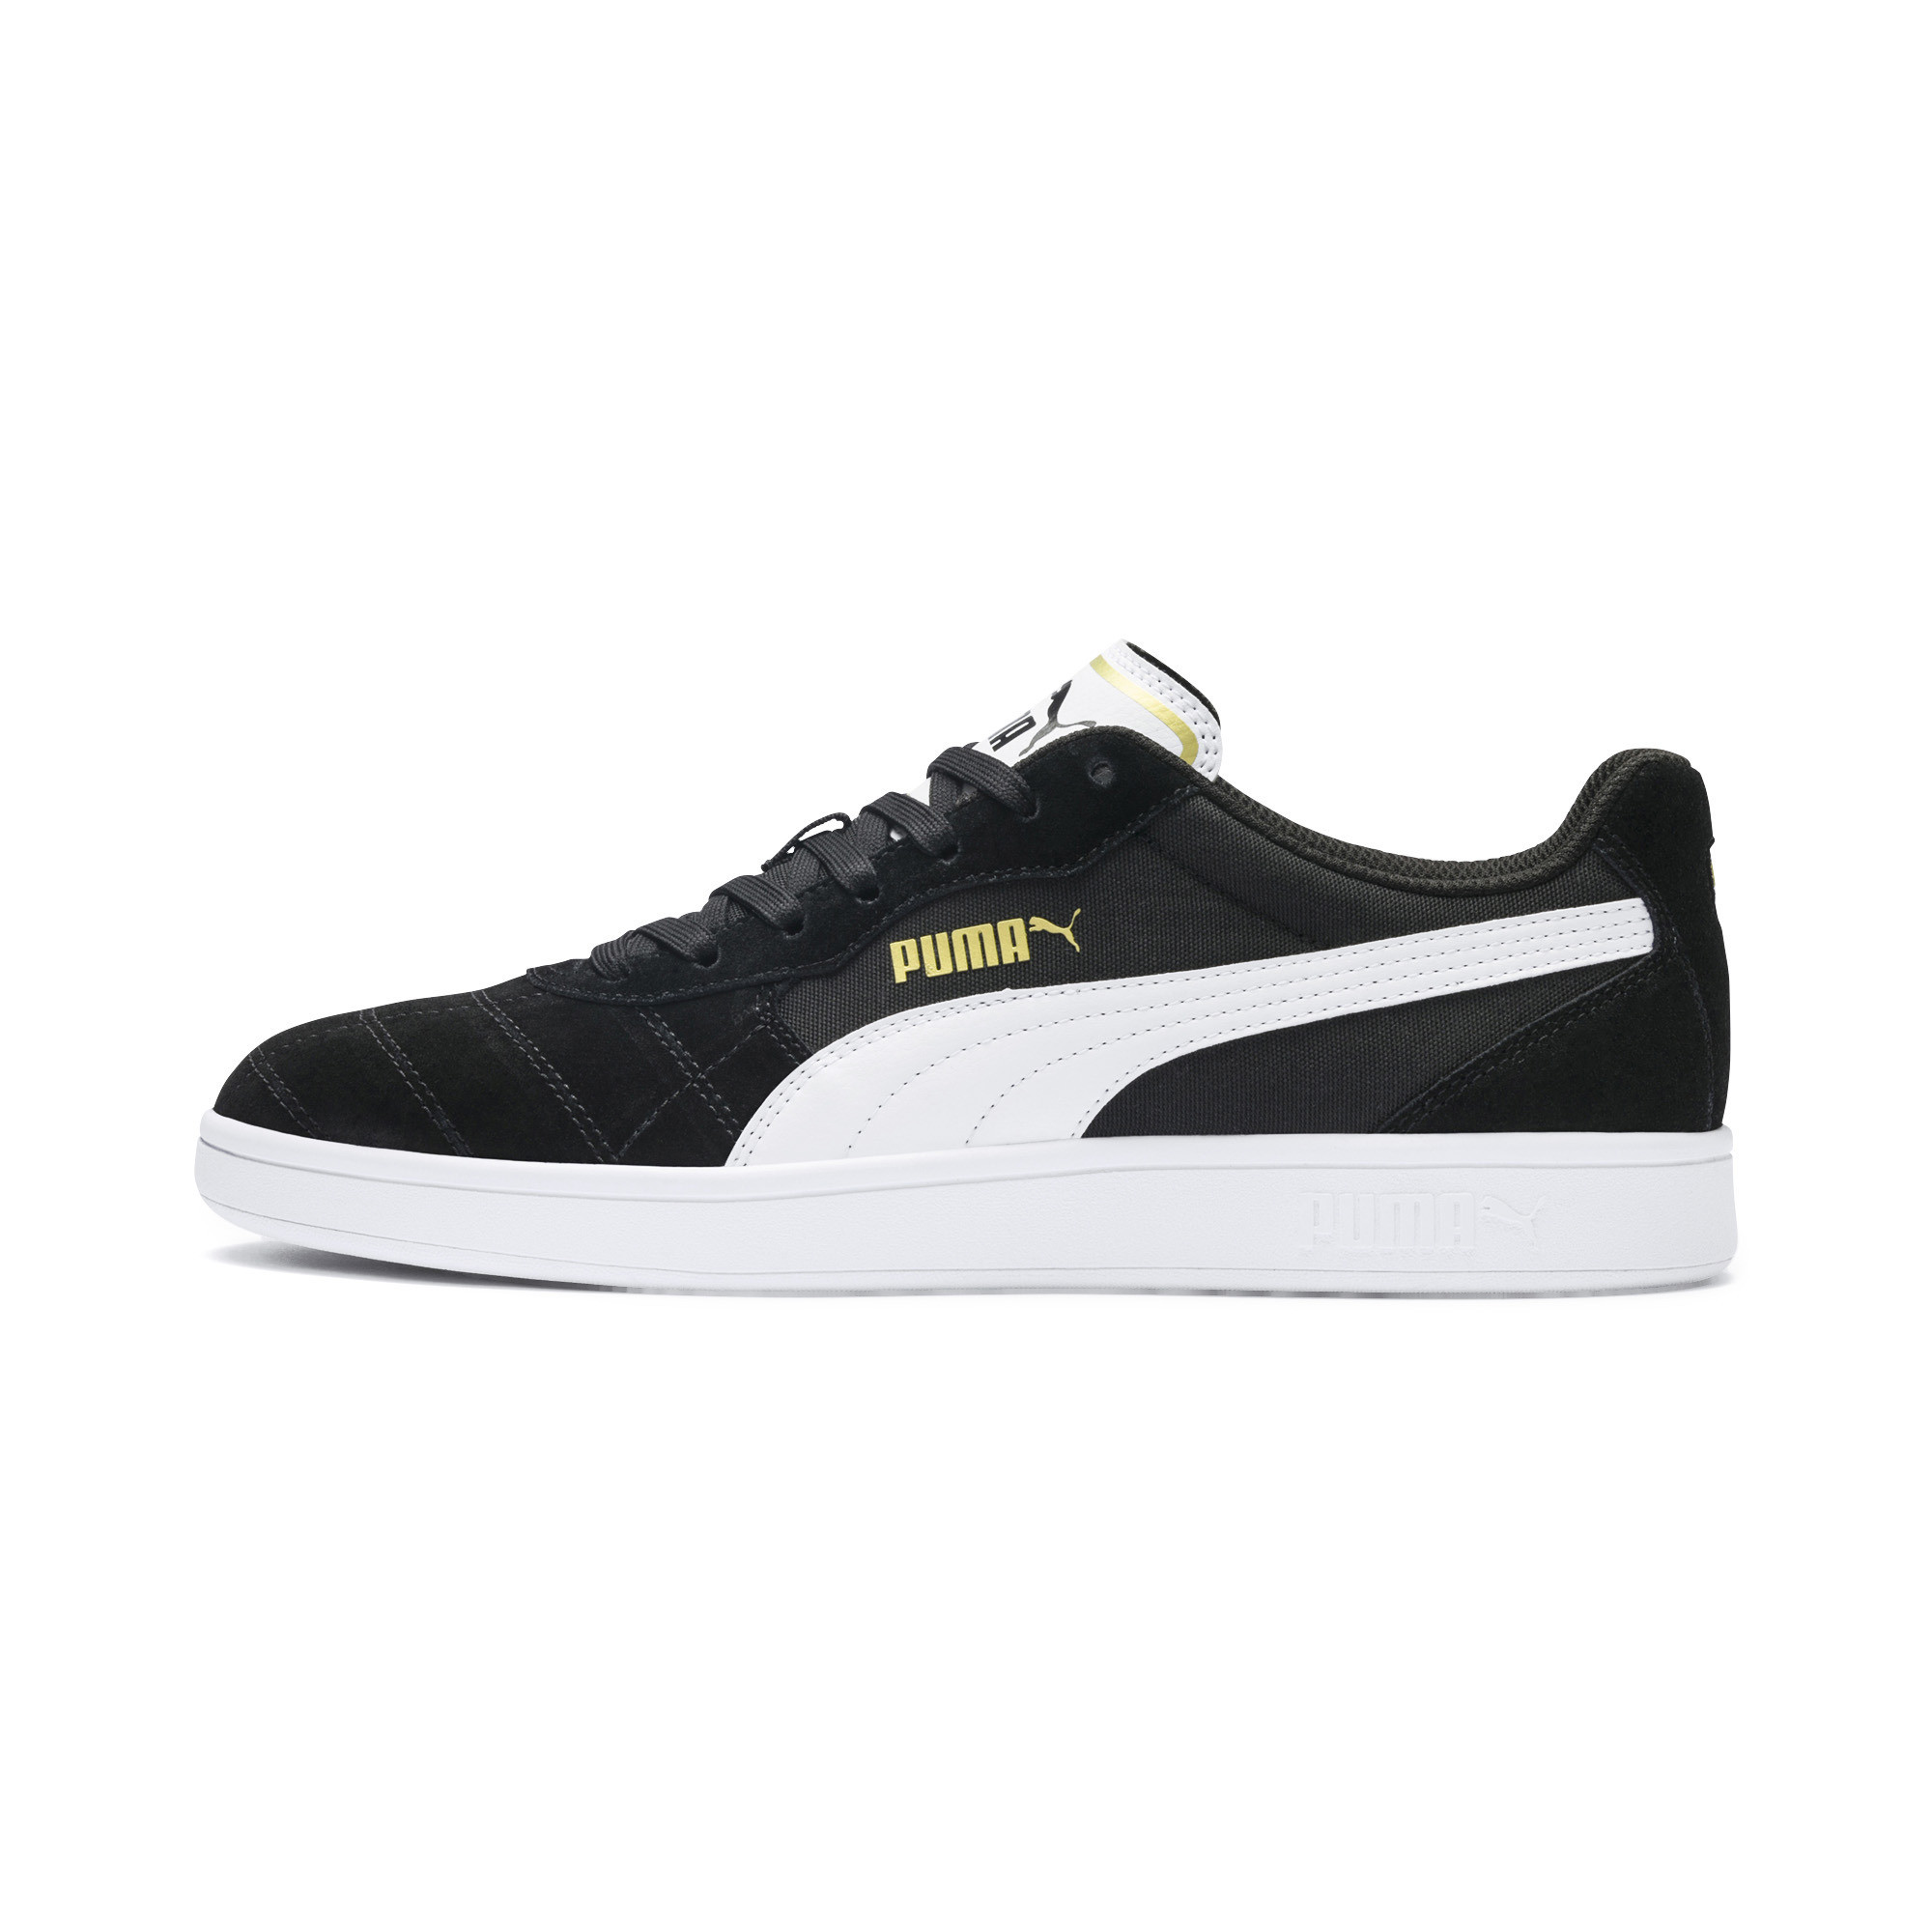 PUMA-Astro-Kick-Sneakers-Men-Shoe-Basics thumbnail 22